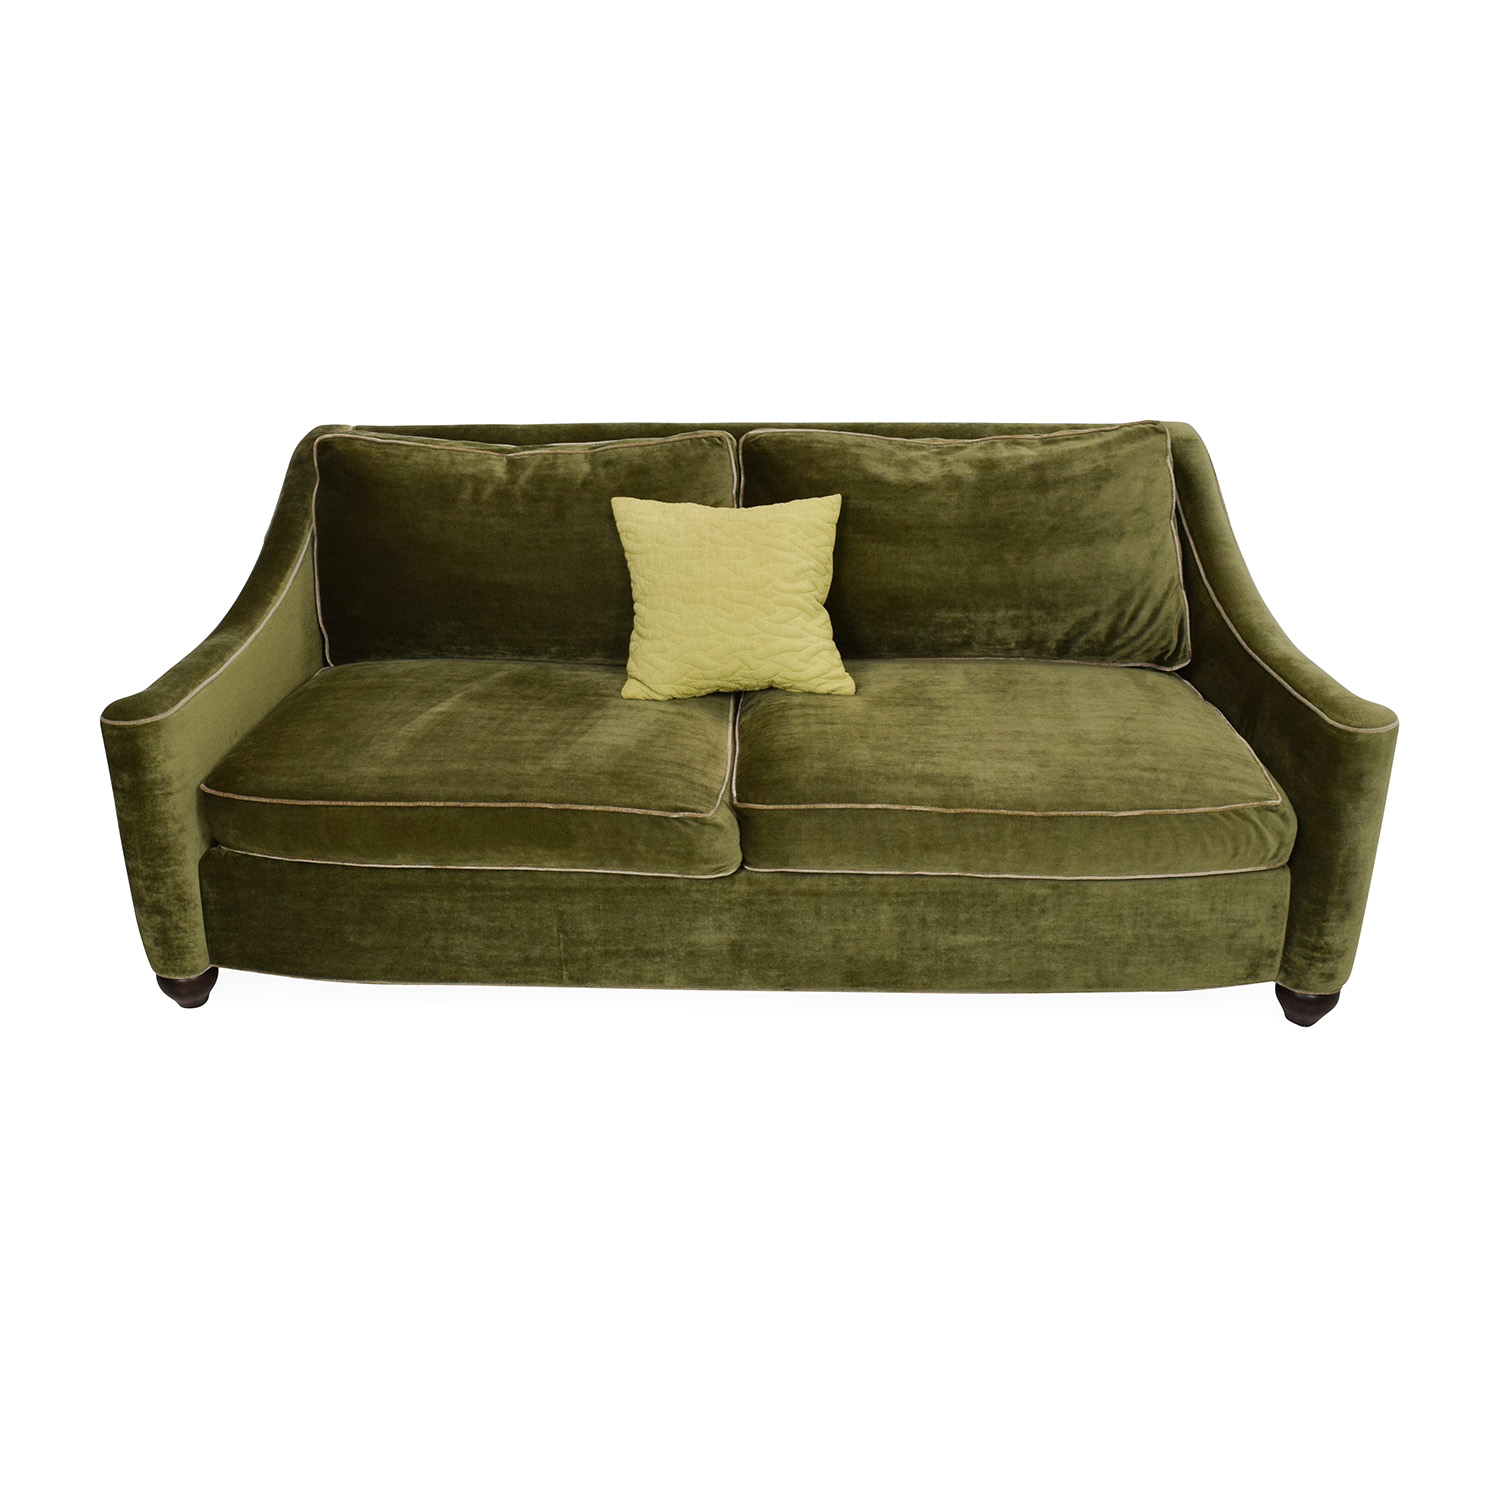 Domain Home Domain Home Classic Sofa second hand